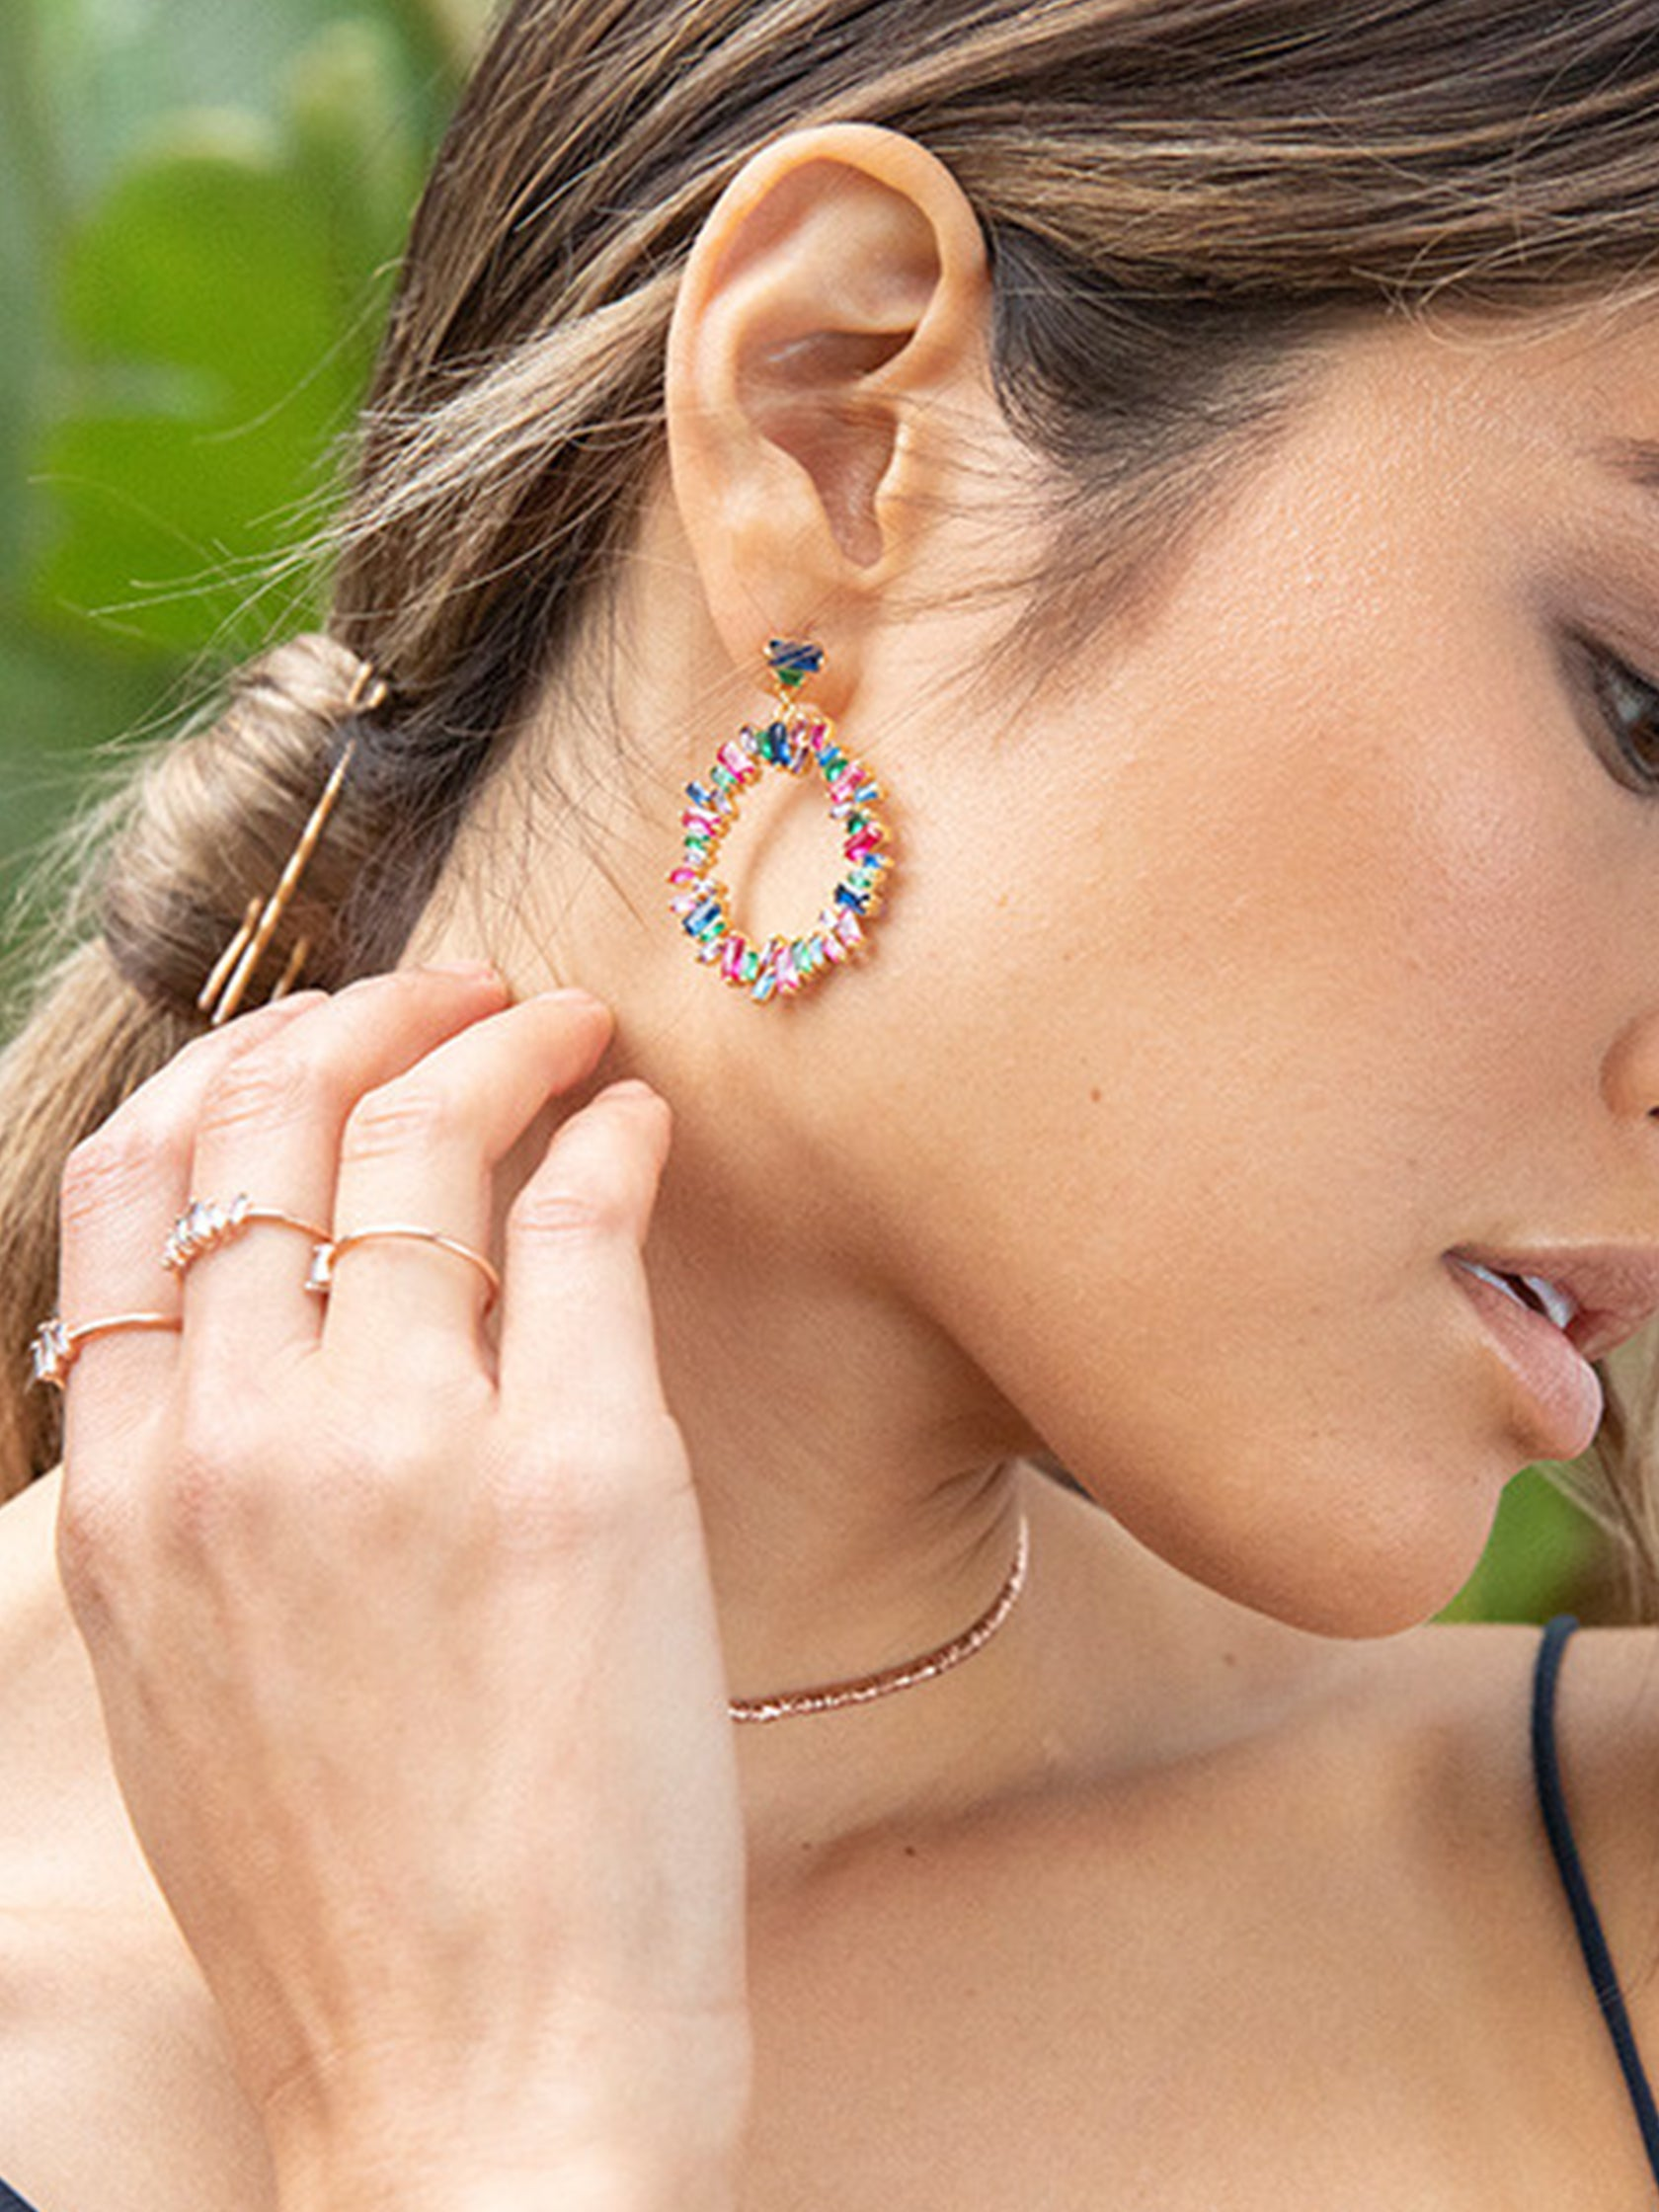 Girl wearing a earrings rental from Gorjana called Amara Cluster Drop Hoop